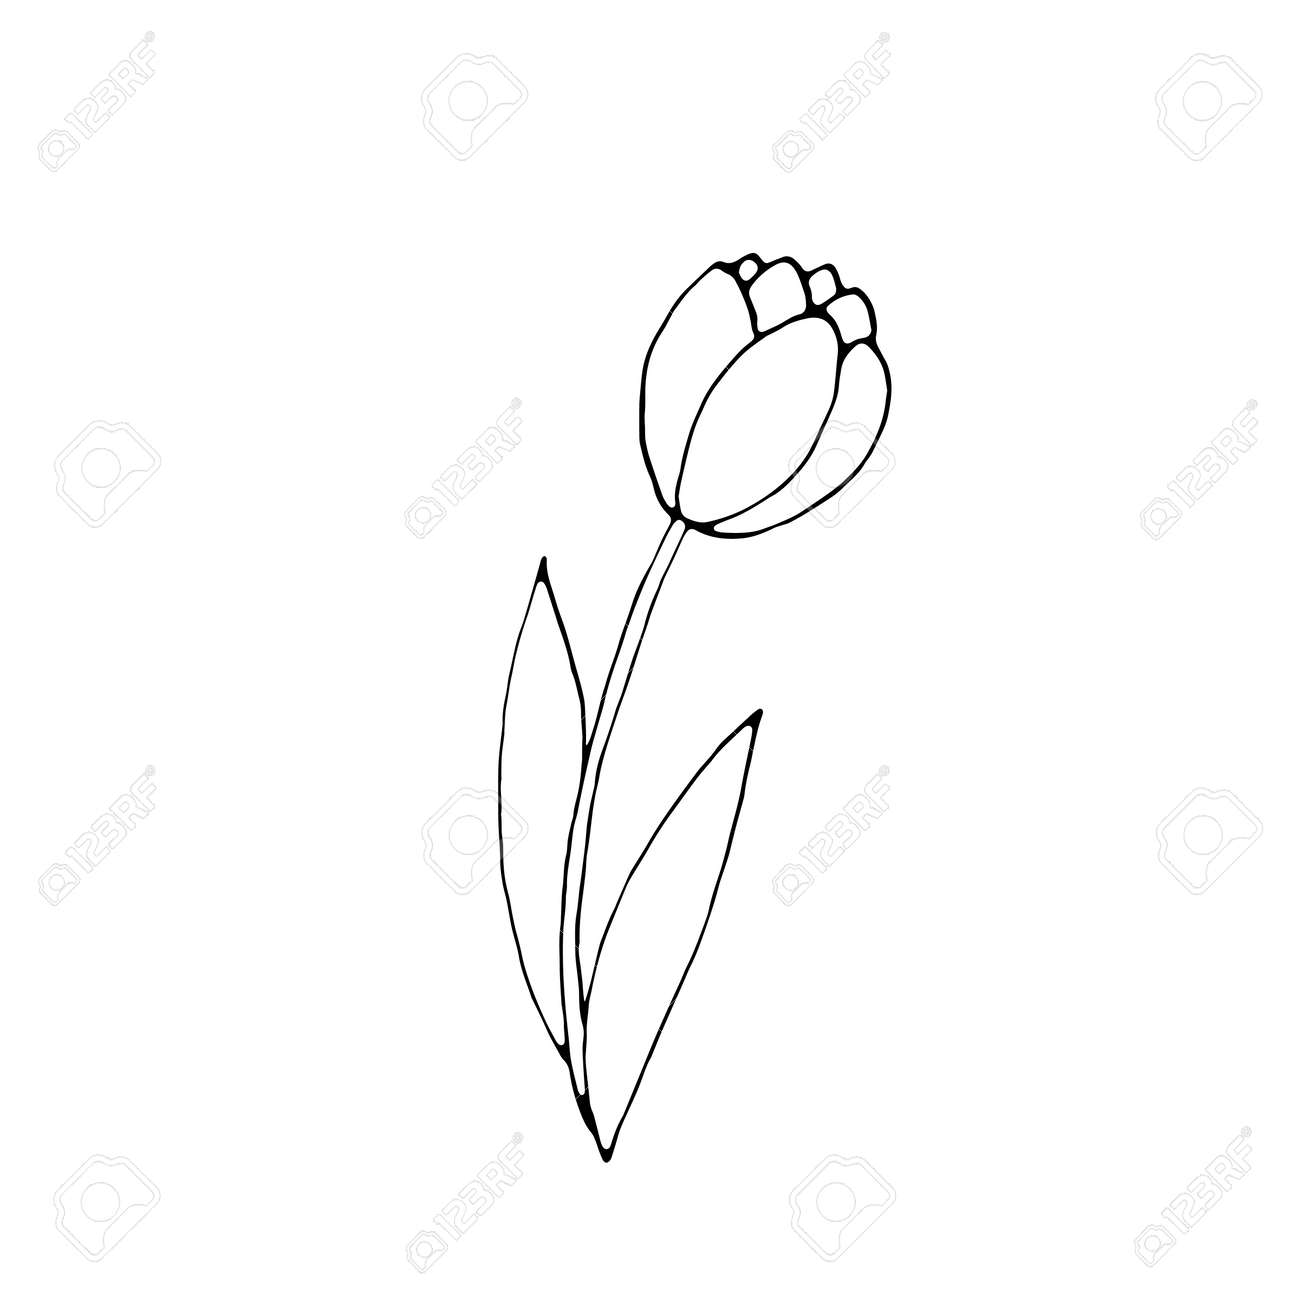 Outline Of Tulip Flower Isolated On White Background Hand Drawn Royalty Free Cliparts Vectors And Stock Illustration Image 161277862